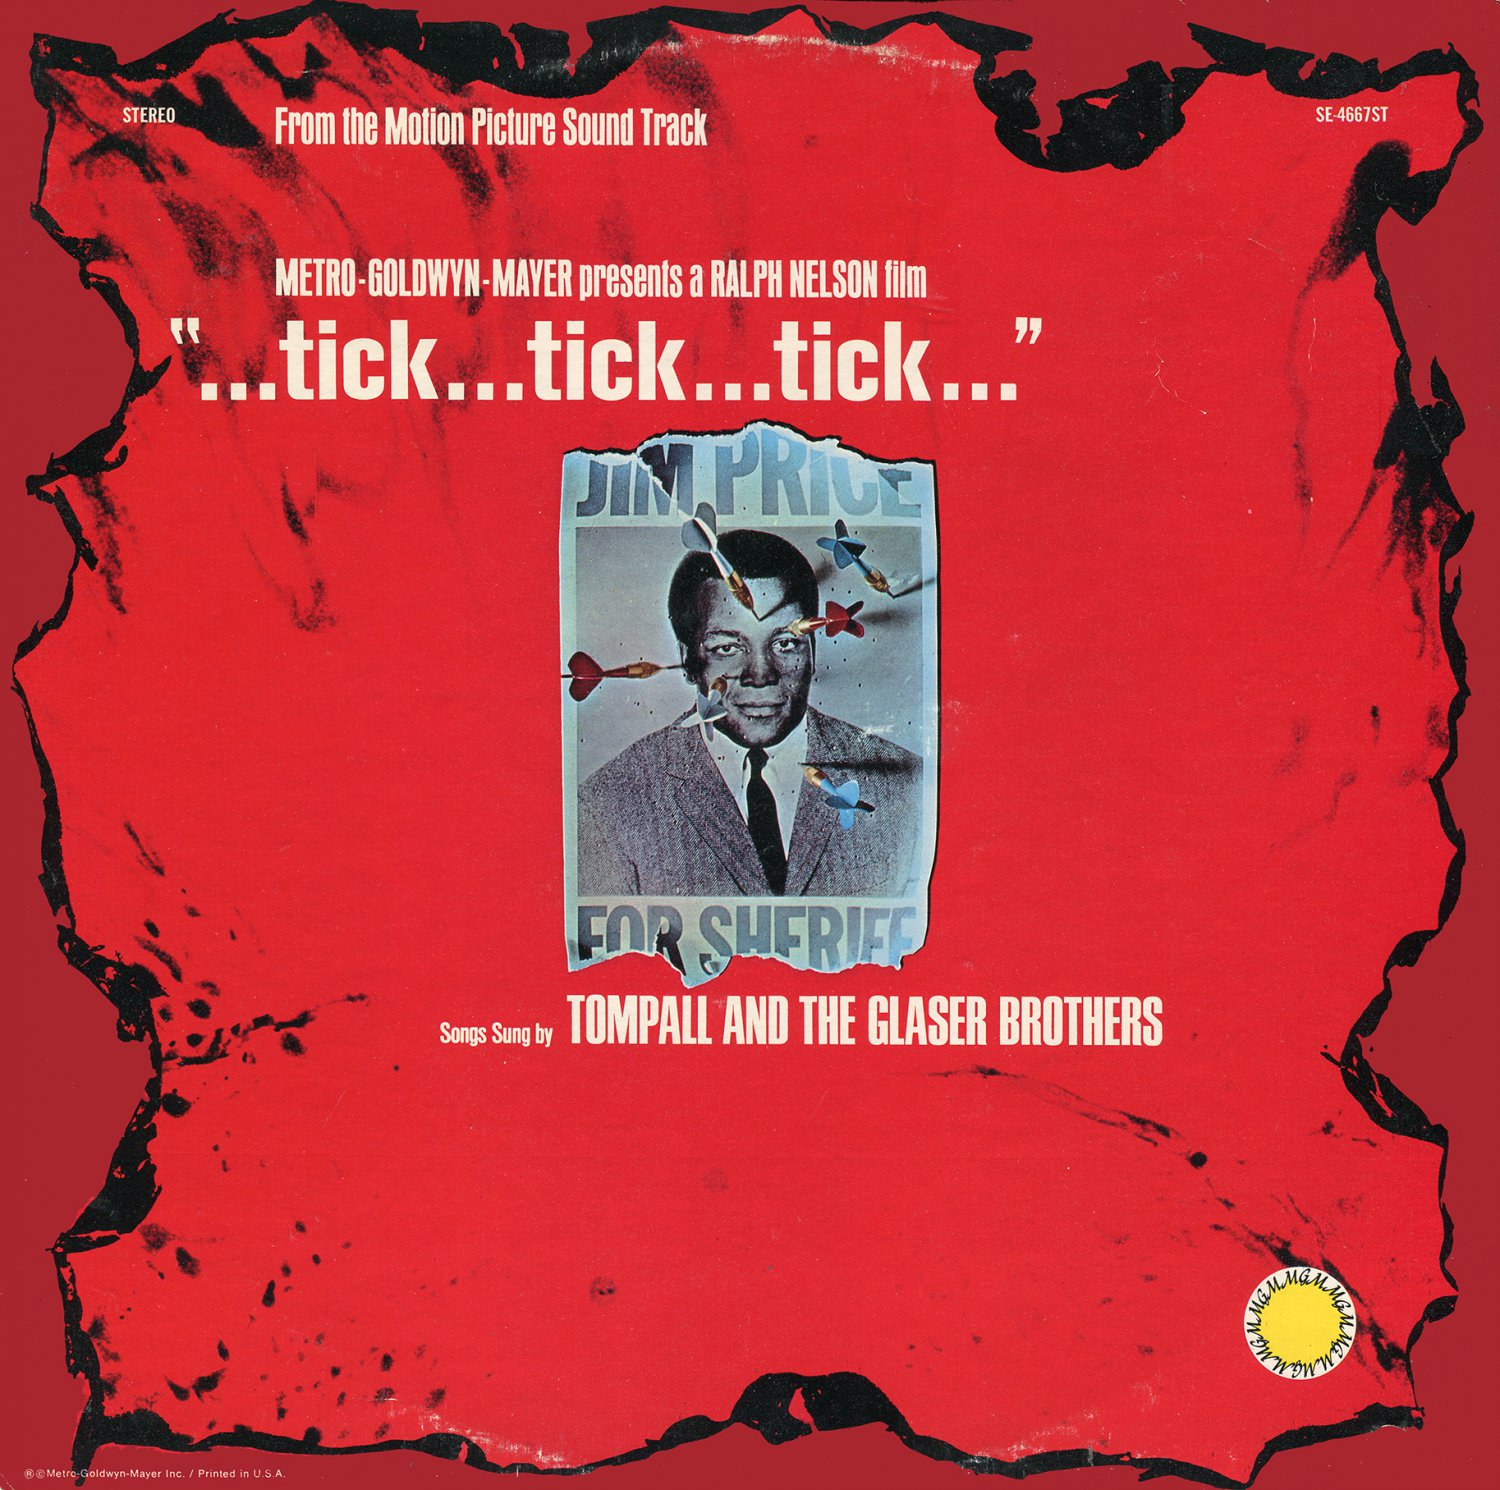 Tick...Tick...Tick - Original Soundtrack, Tompall and the Glaser Brothers OST LP/CD